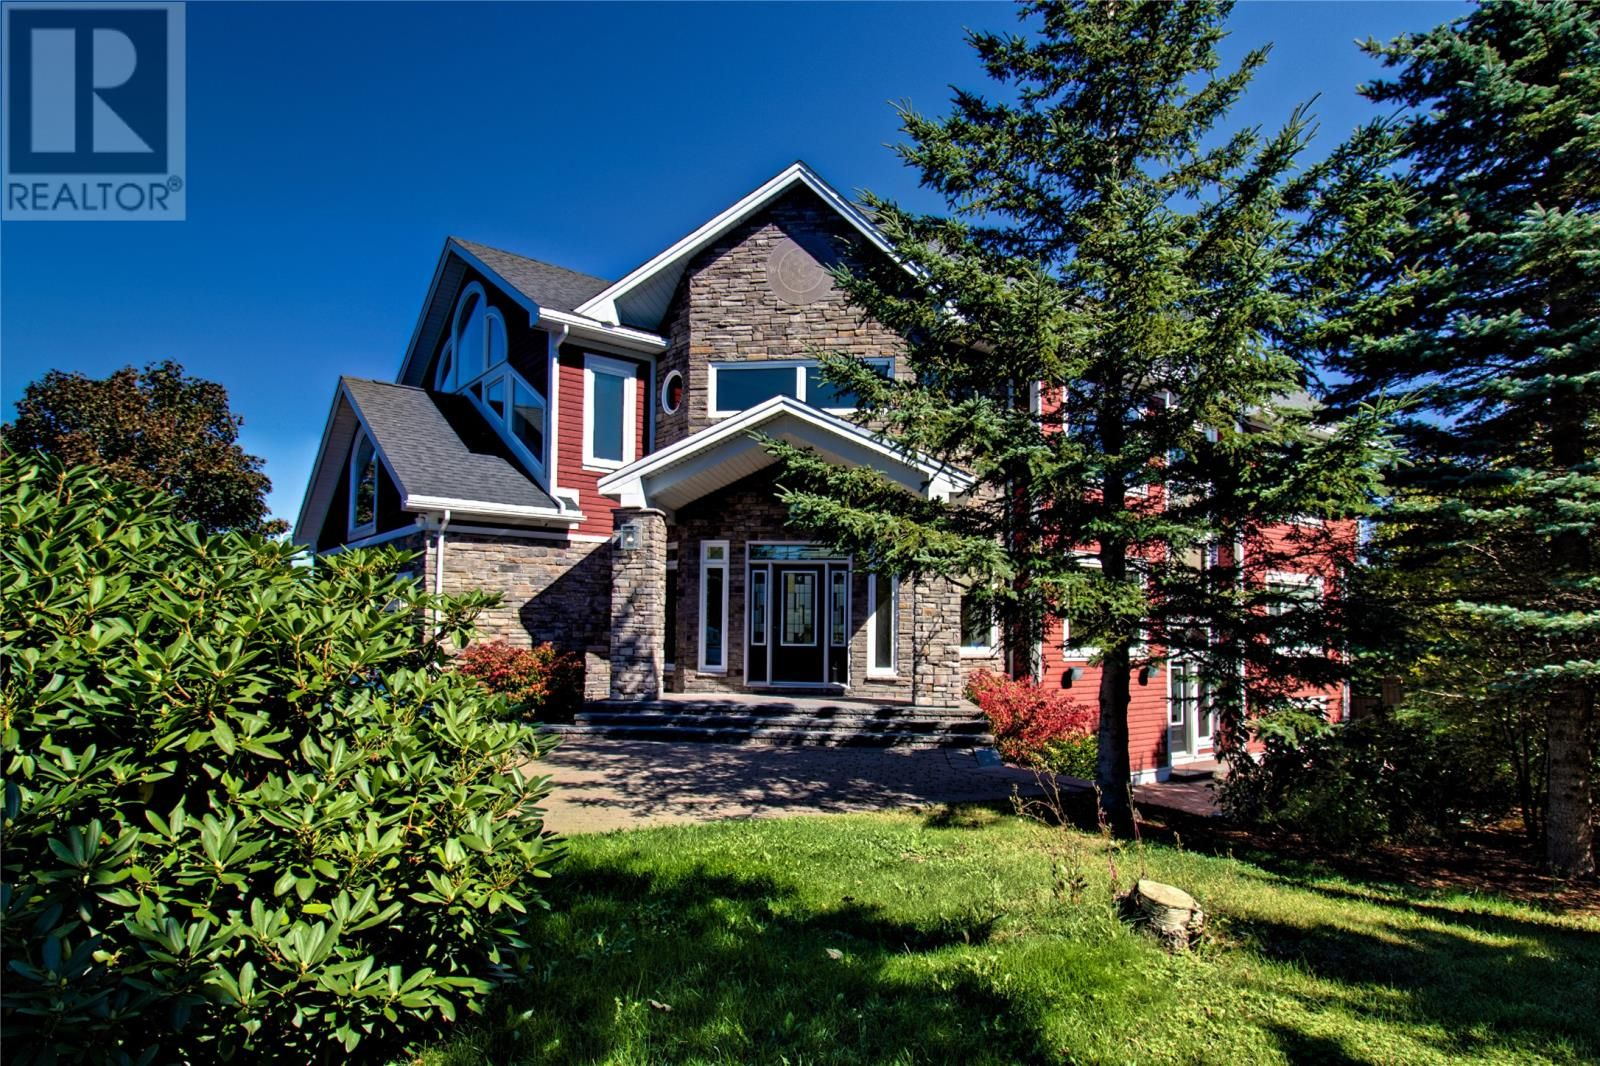 Main Photo: 293 Buckingham Drive in Paradise: House for sale : MLS®# 1237367